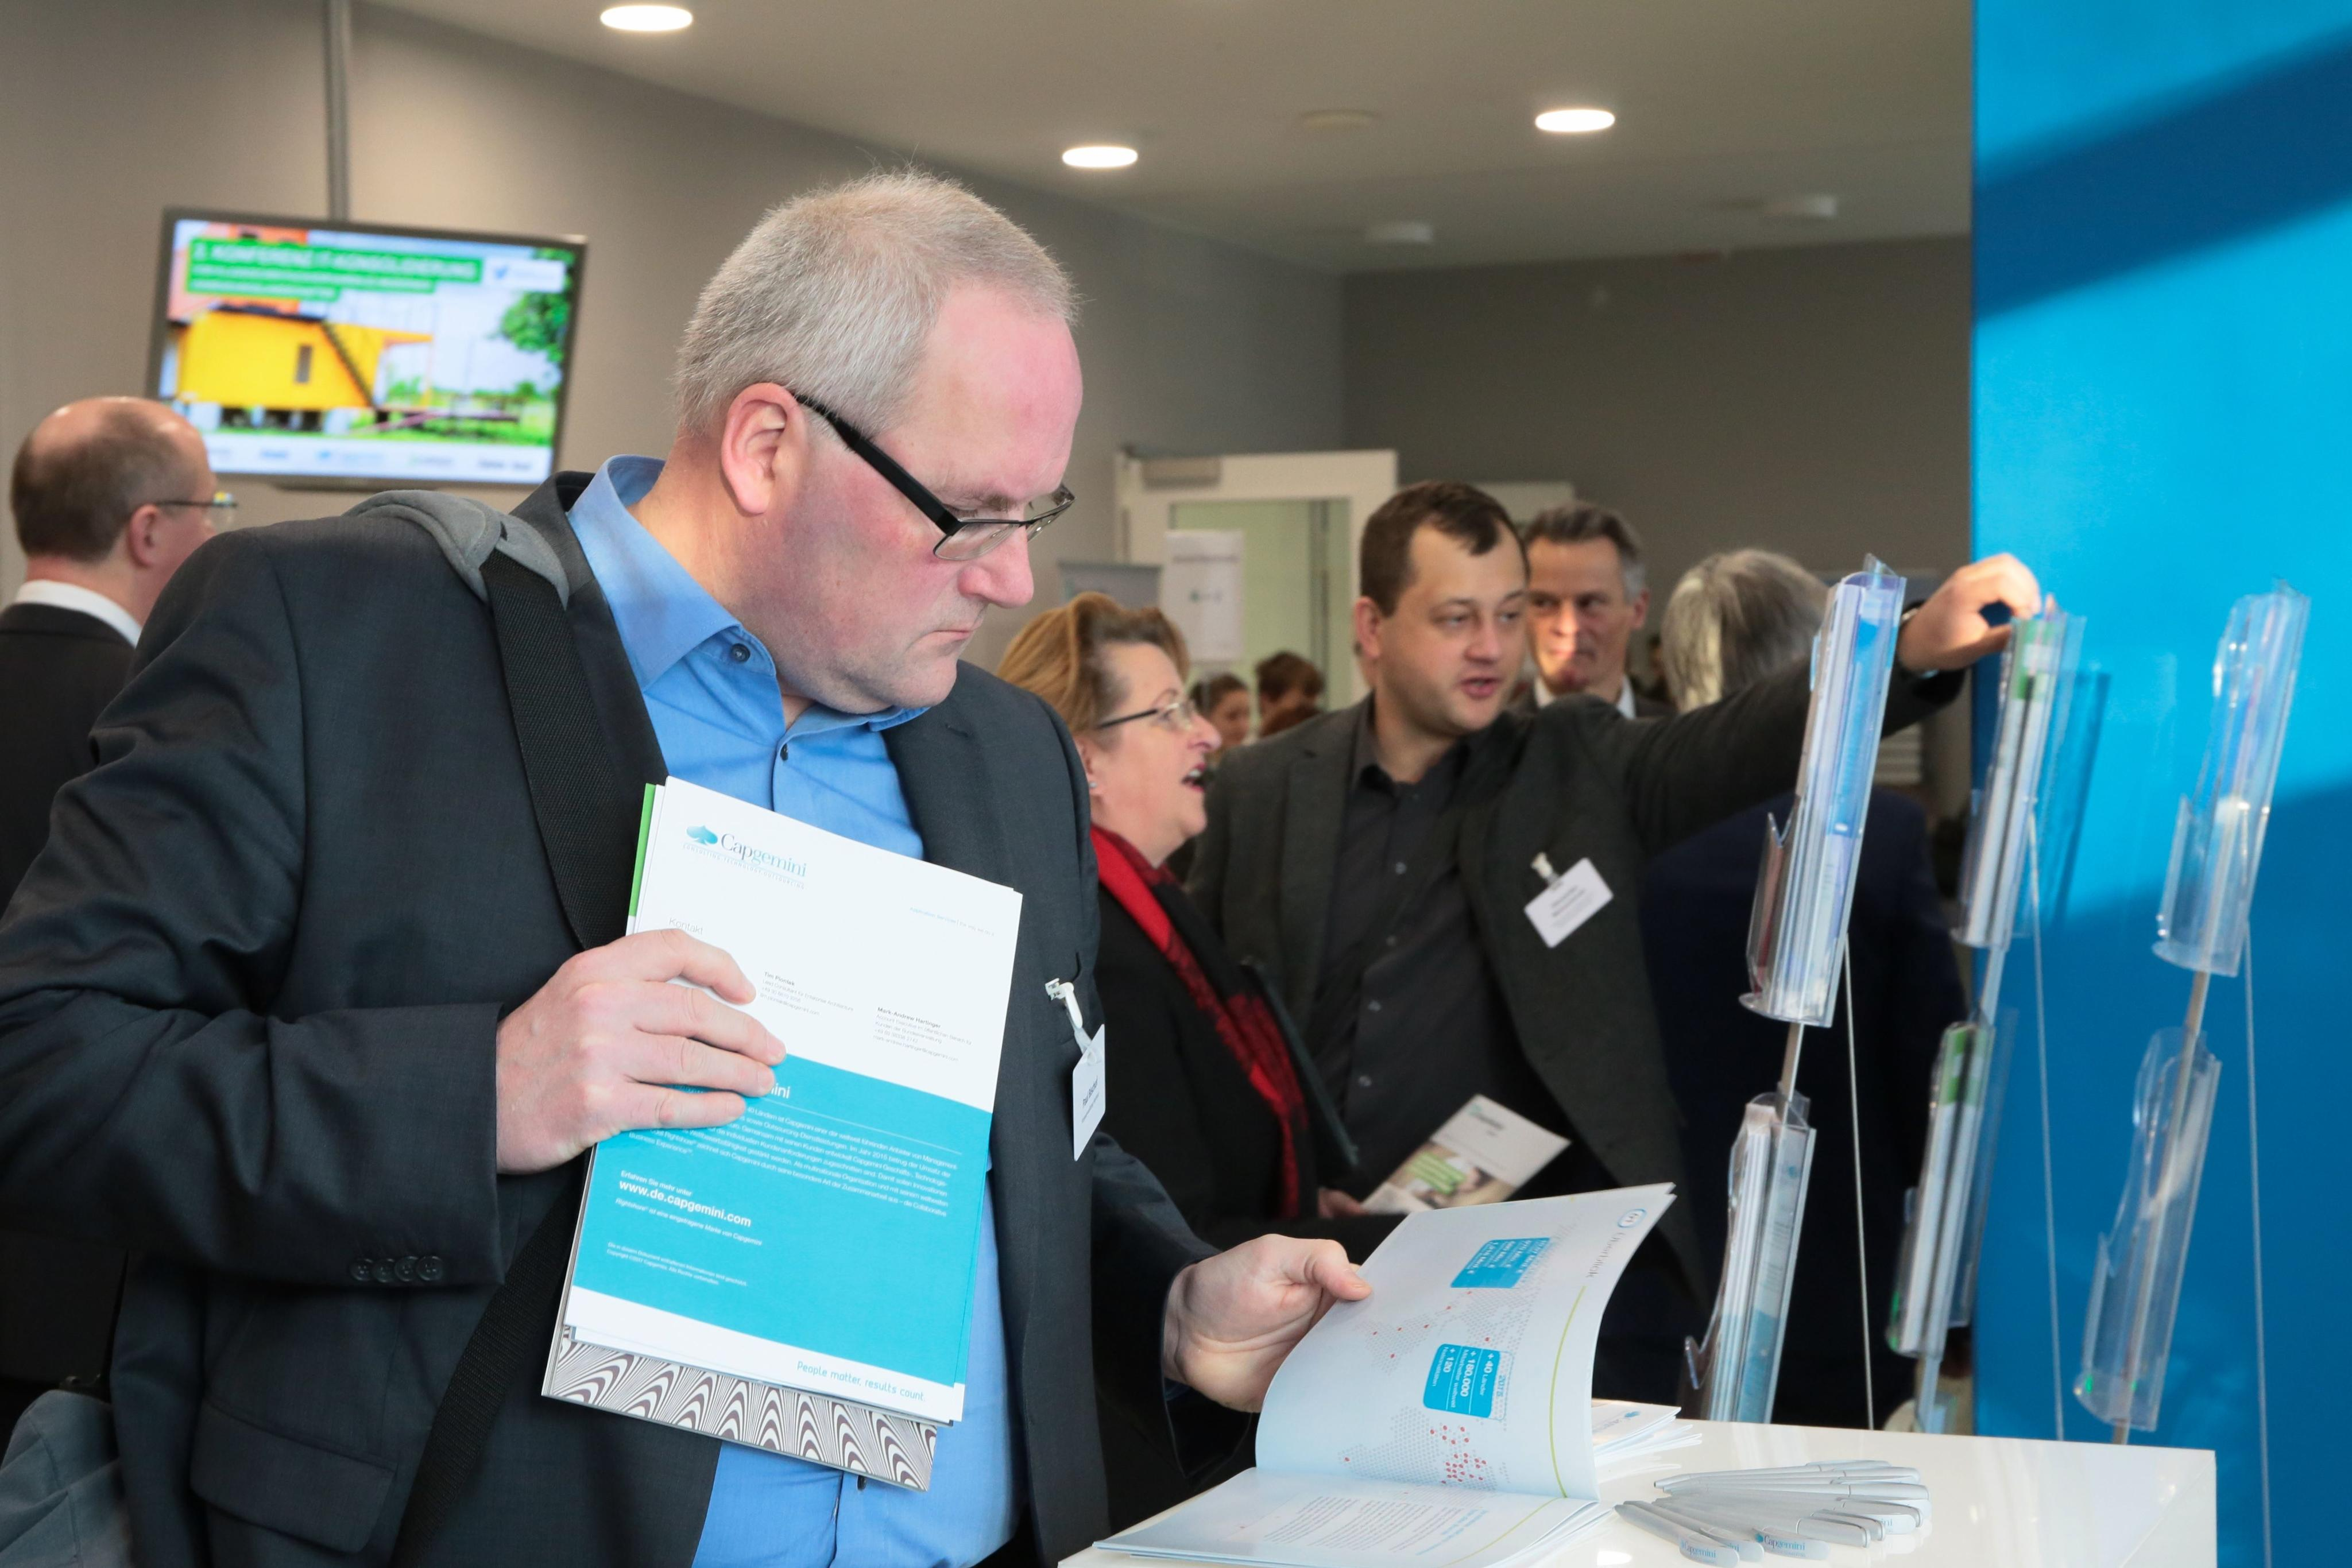 DPS, Event, IT-Konsolidierung, Konferenz, 2017